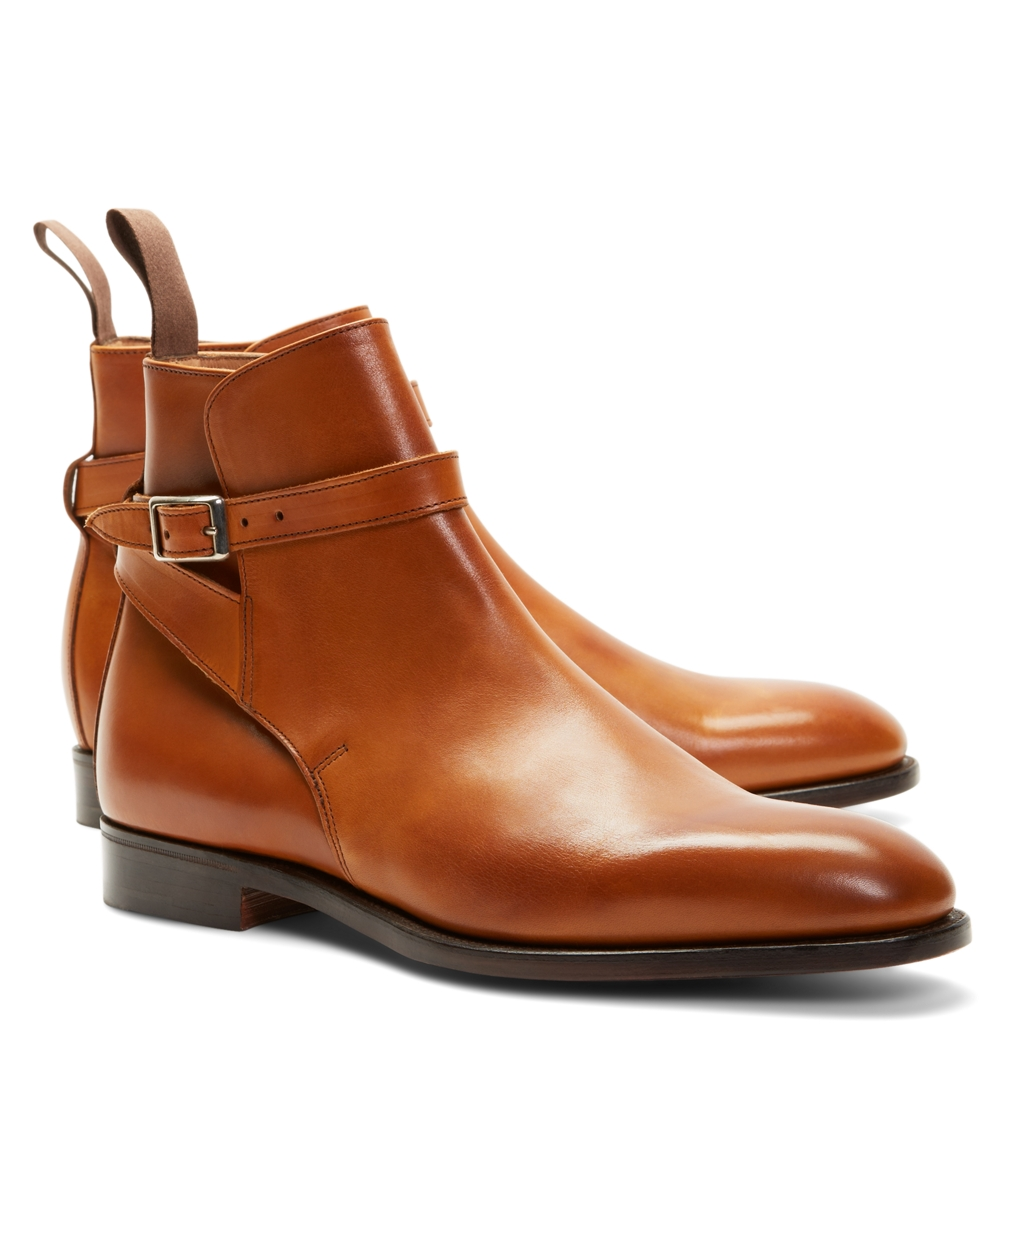 Brooks Brothers Men's Peal & Co. Leather Ankle Strap Buckle Boots